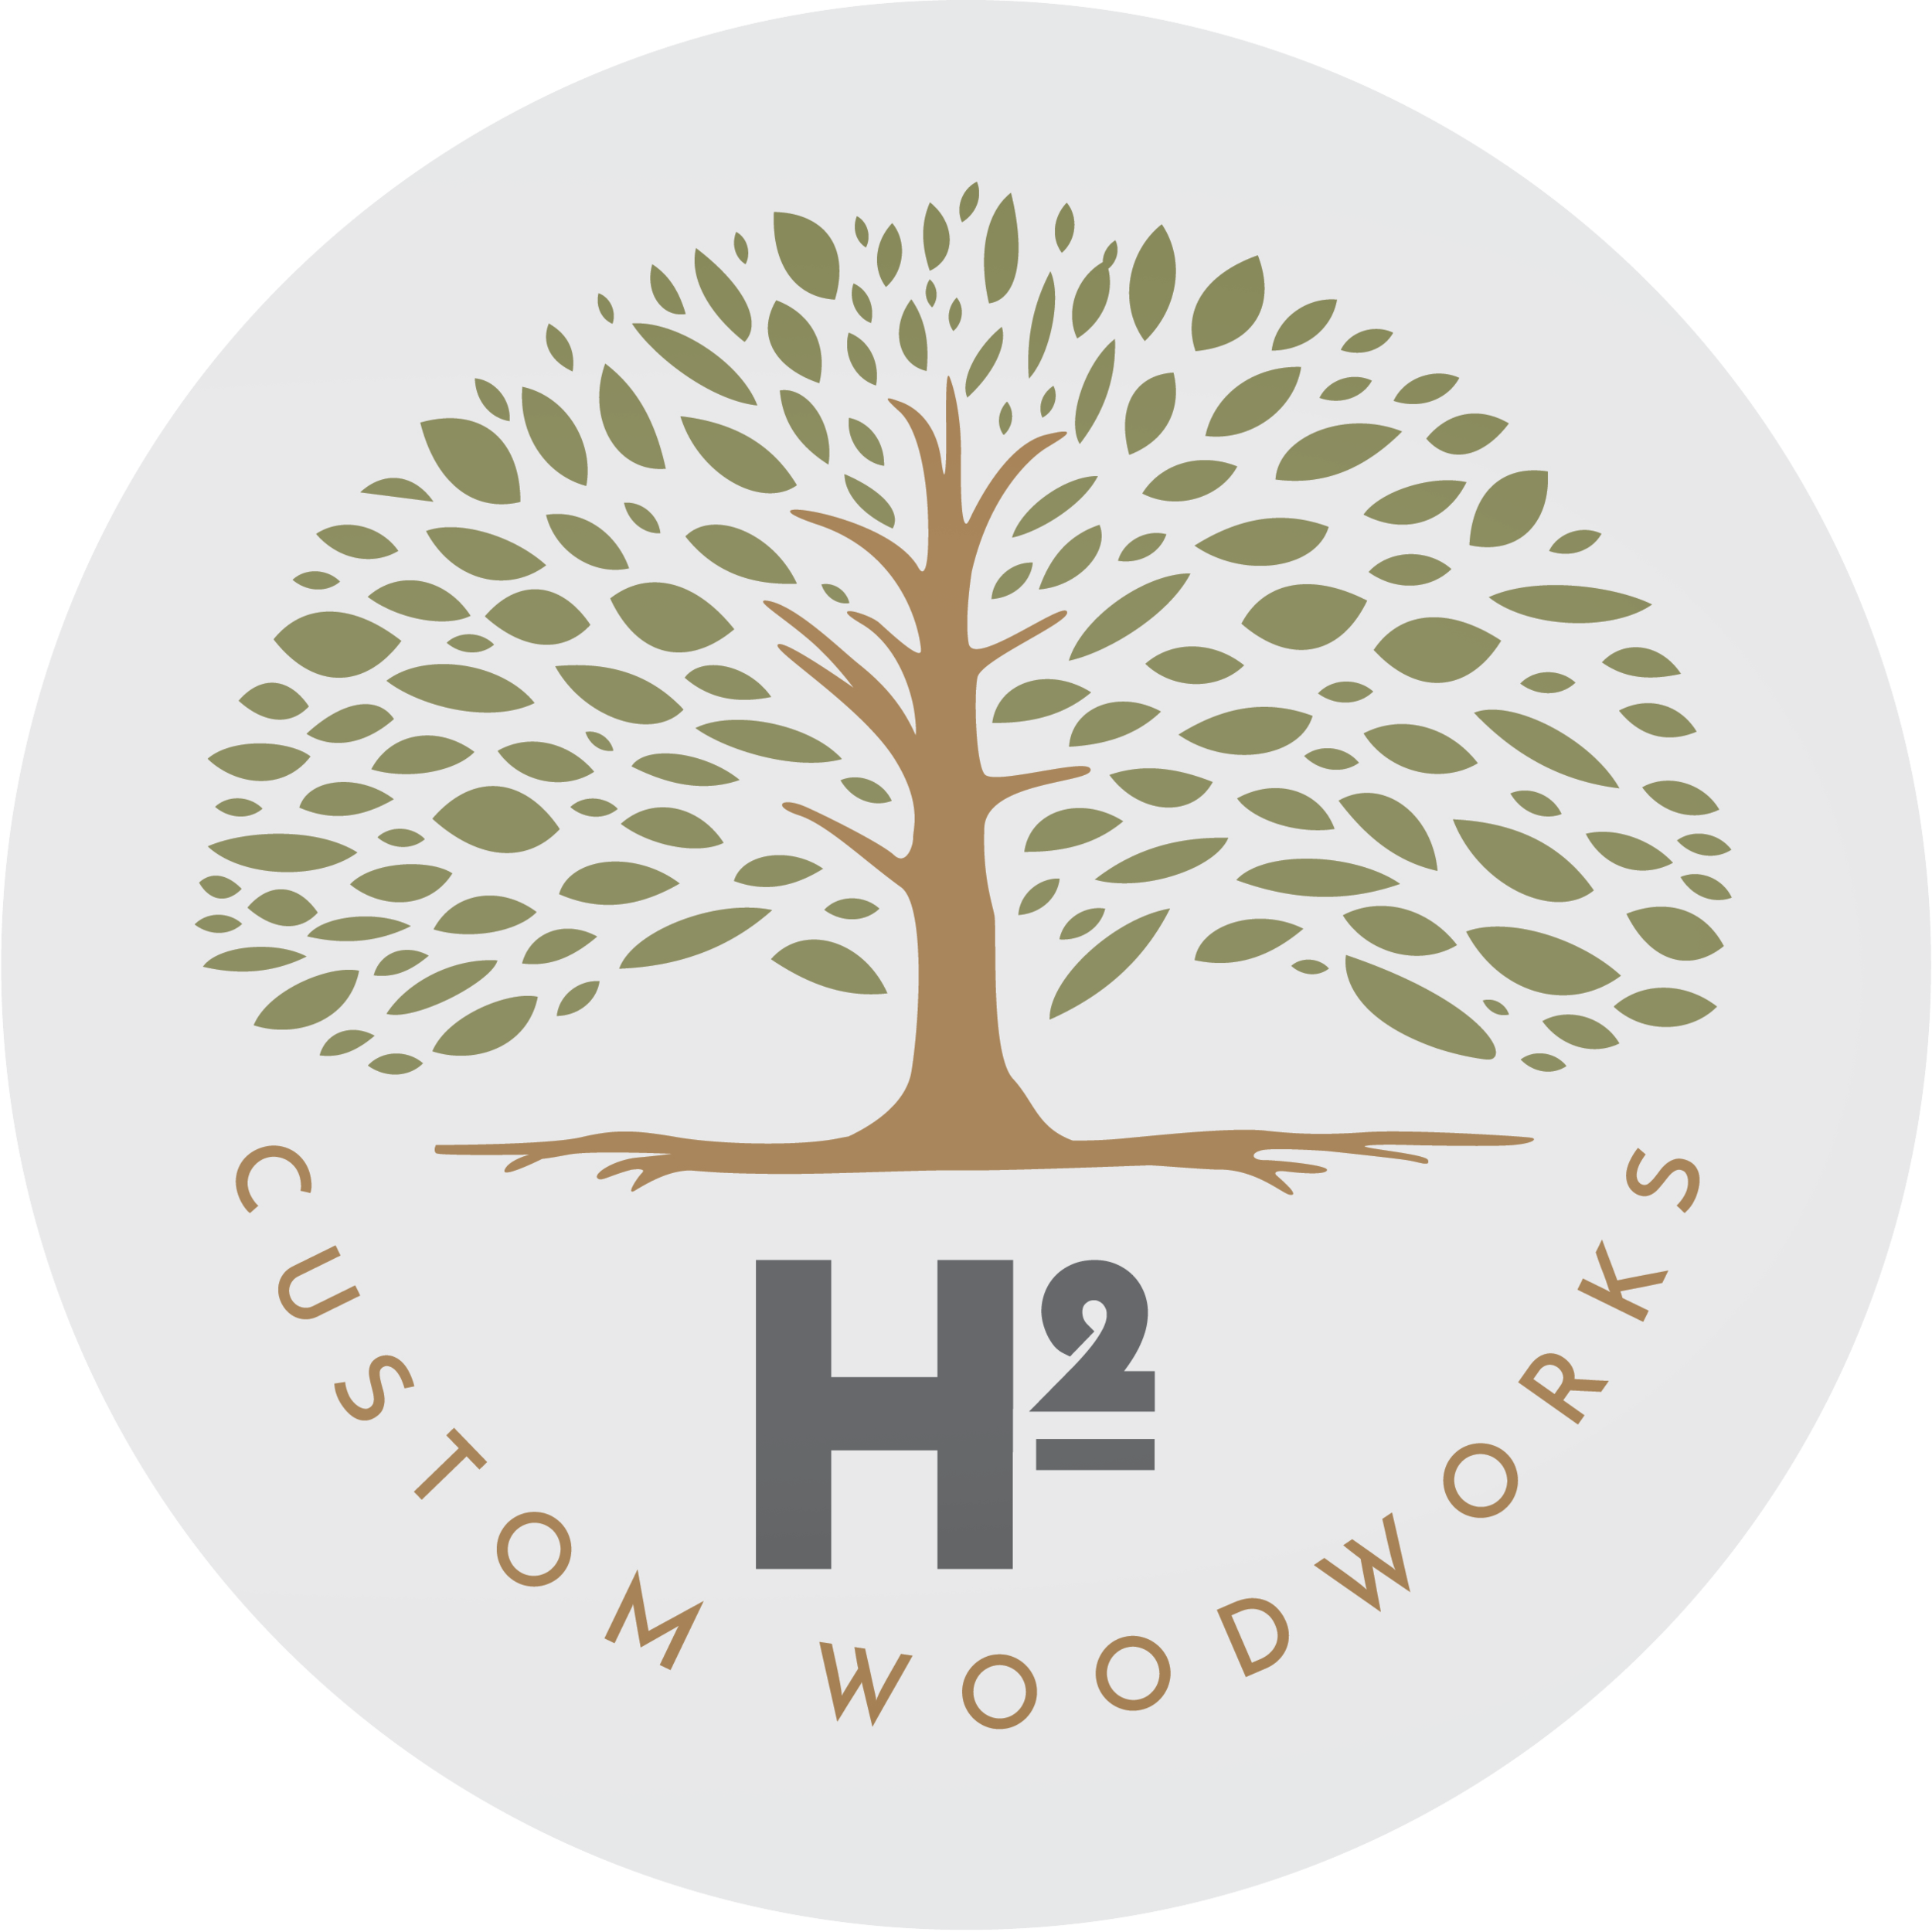 H2 Custom Woodworks